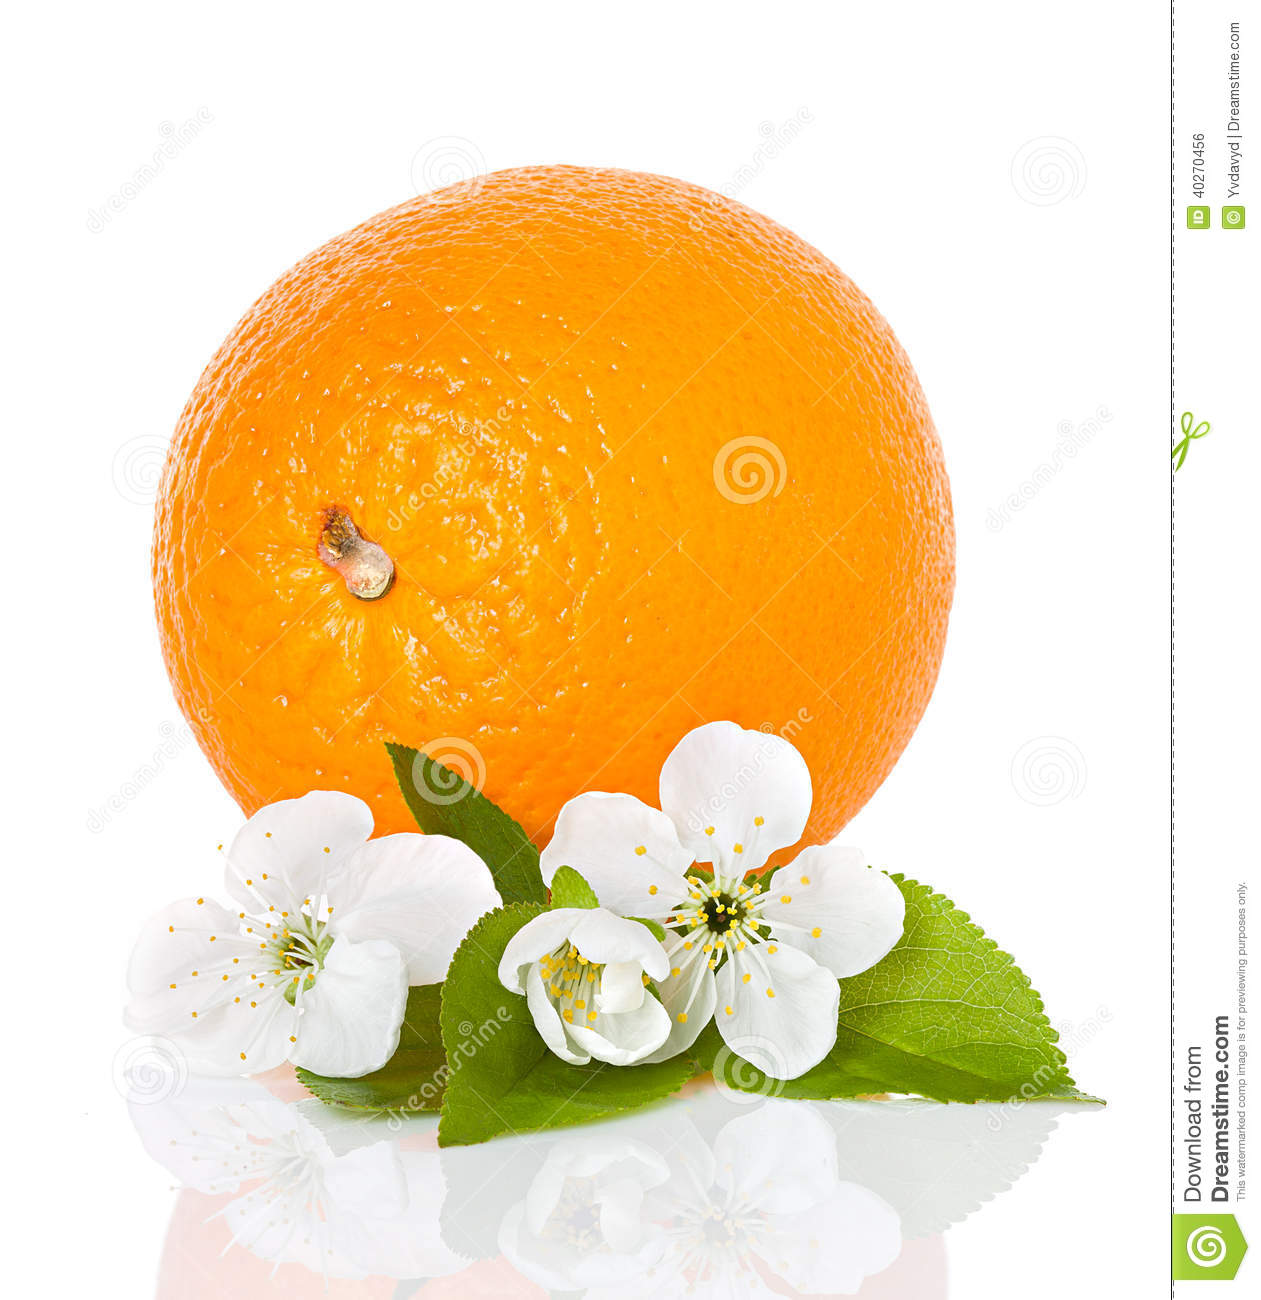 Citrus Fruit Orange With Flowers And Leaves Stock Photo - Image ...